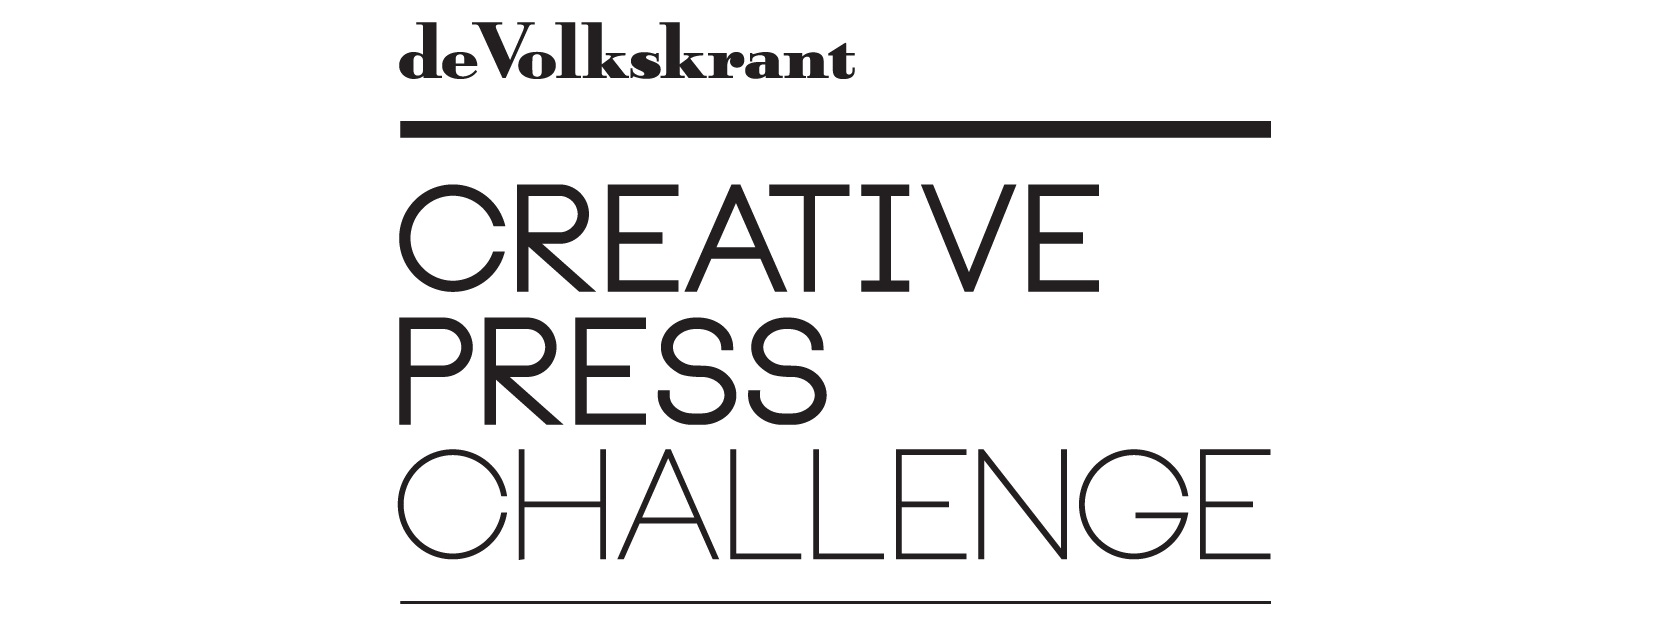 Shortlist en jury Creative Press Challenge 2016 bekend